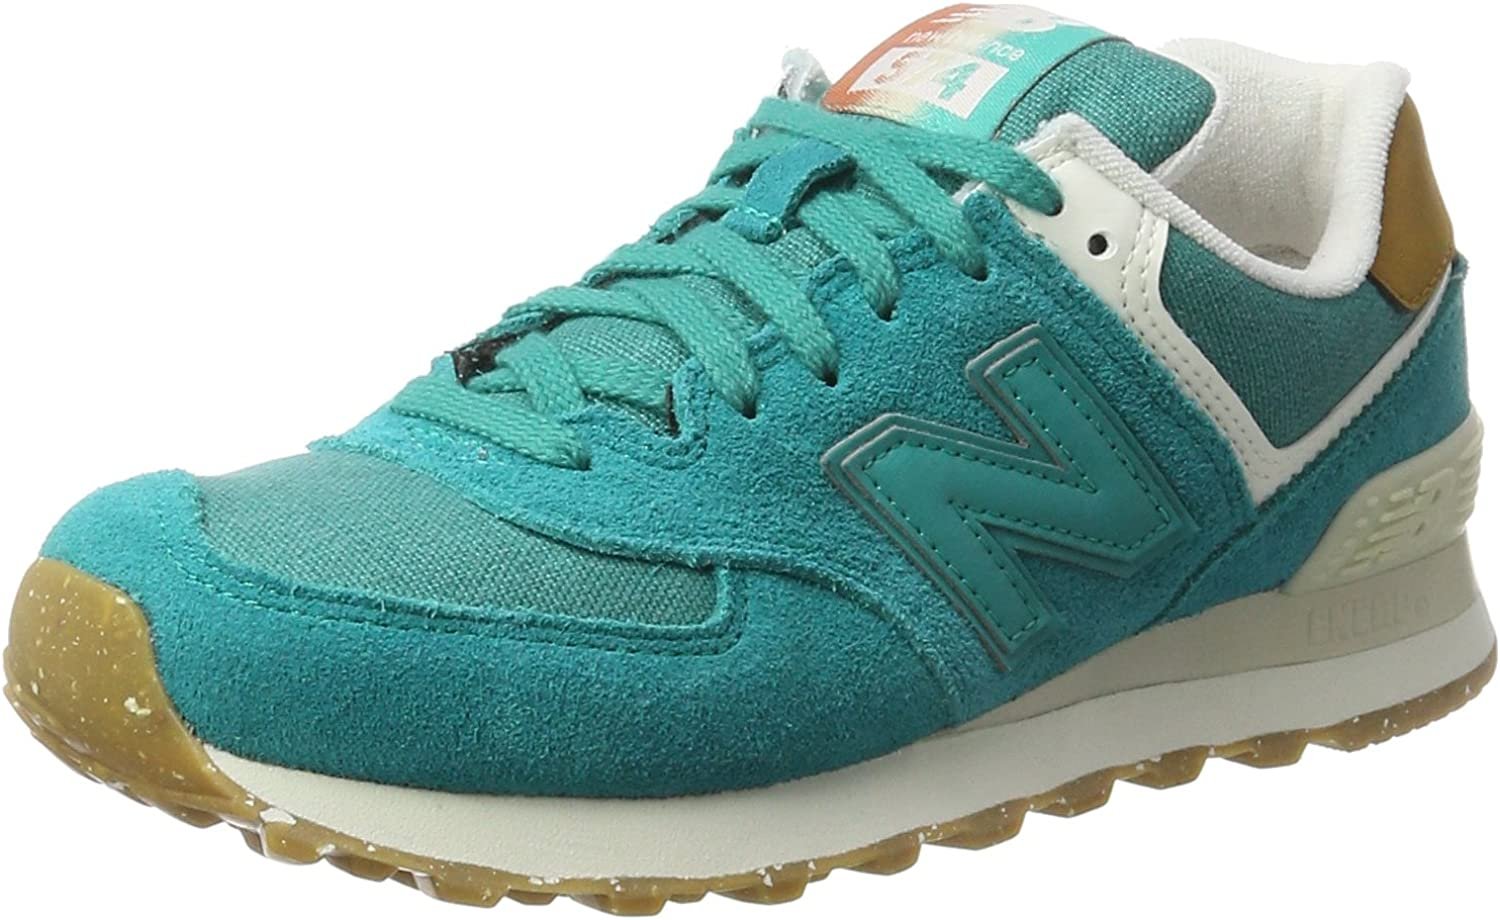 New New New Balance Damen 574 Global Surf Turnschuhe  332b06